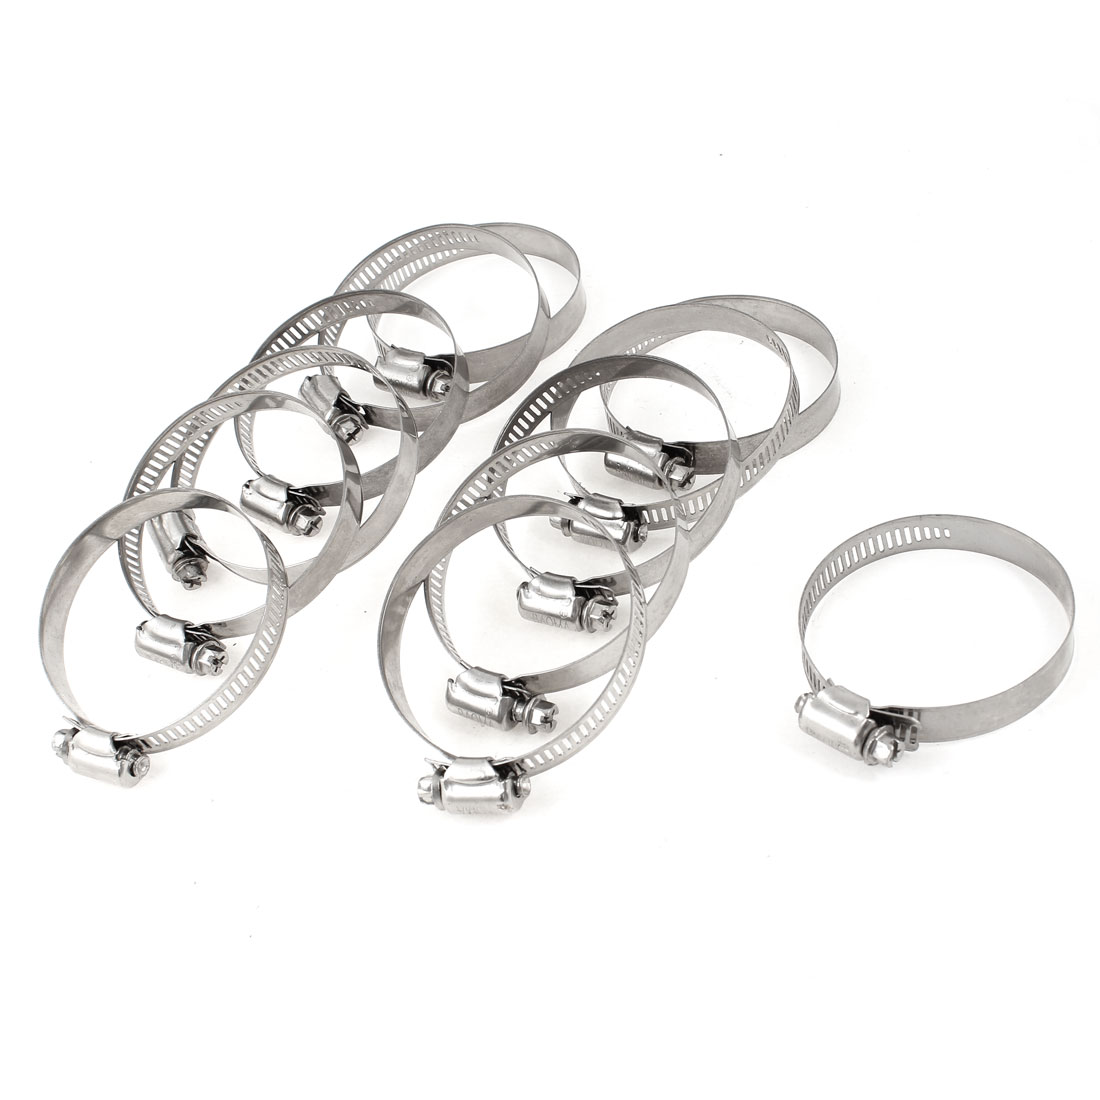 12pcs Adjustable 44-67mm Range Worm Drive Hose Pipe Clamps Clips